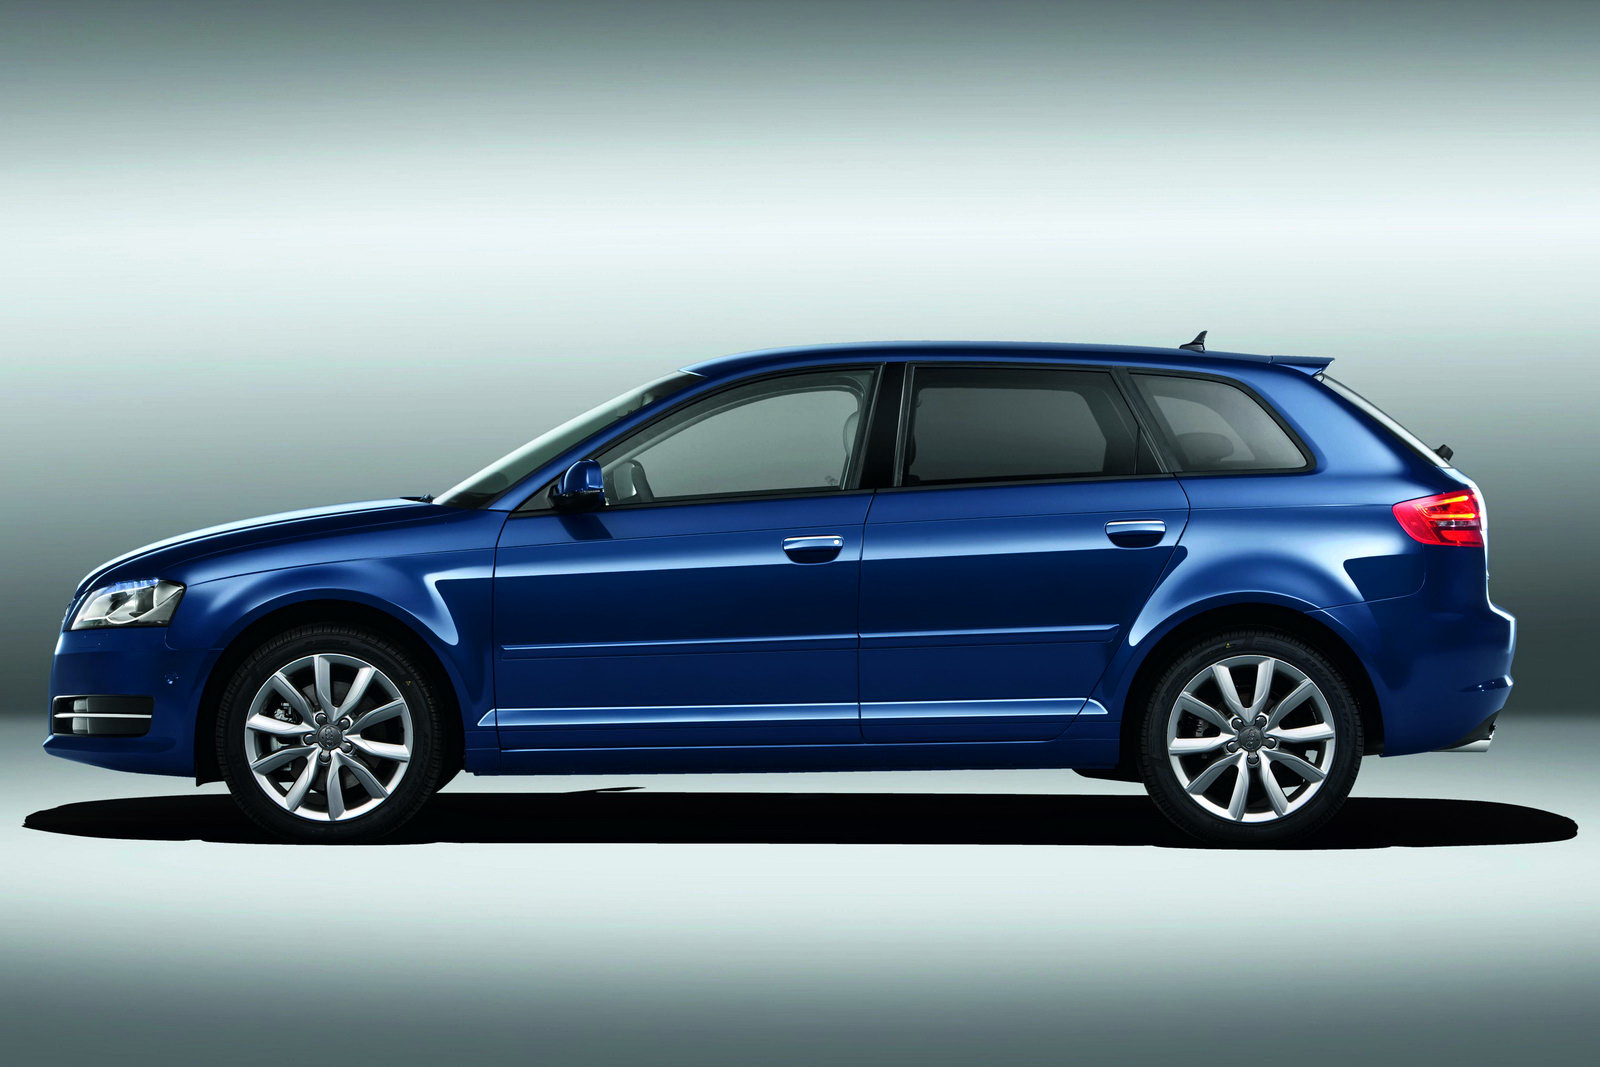 minor tweaks for 2011 audi a3 hatch sportback cabriolet and s3 carscoops. Black Bedroom Furniture Sets. Home Design Ideas